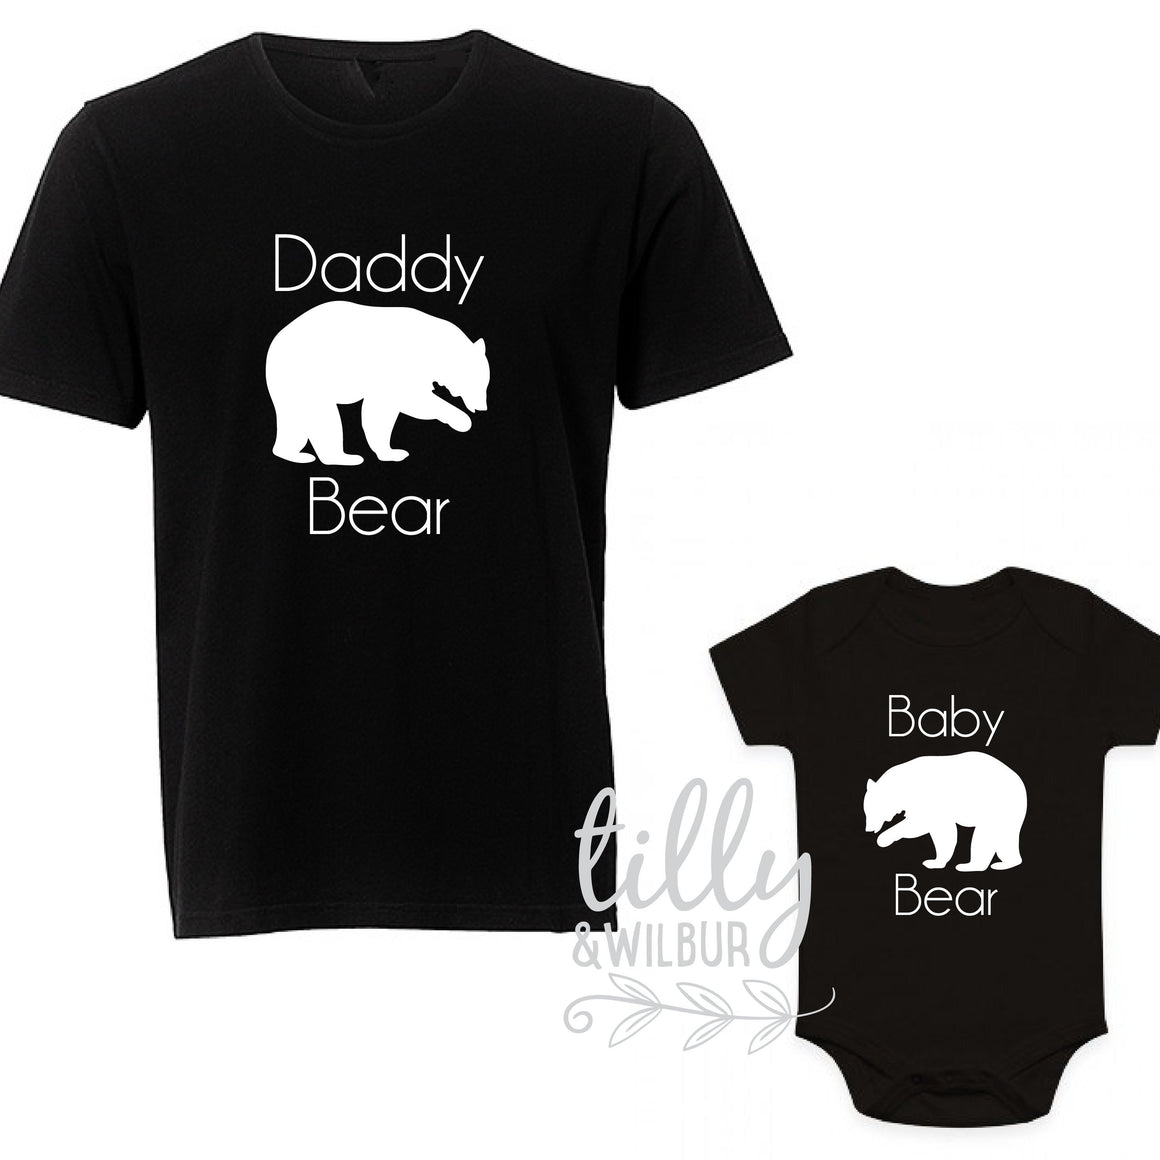 Daddy Bear Baby Bear Father's Day Shirts, Father Son Matching Shirts, Matching Daddy Baby Outfits, First 1st Father's Day, Matchy Matchy